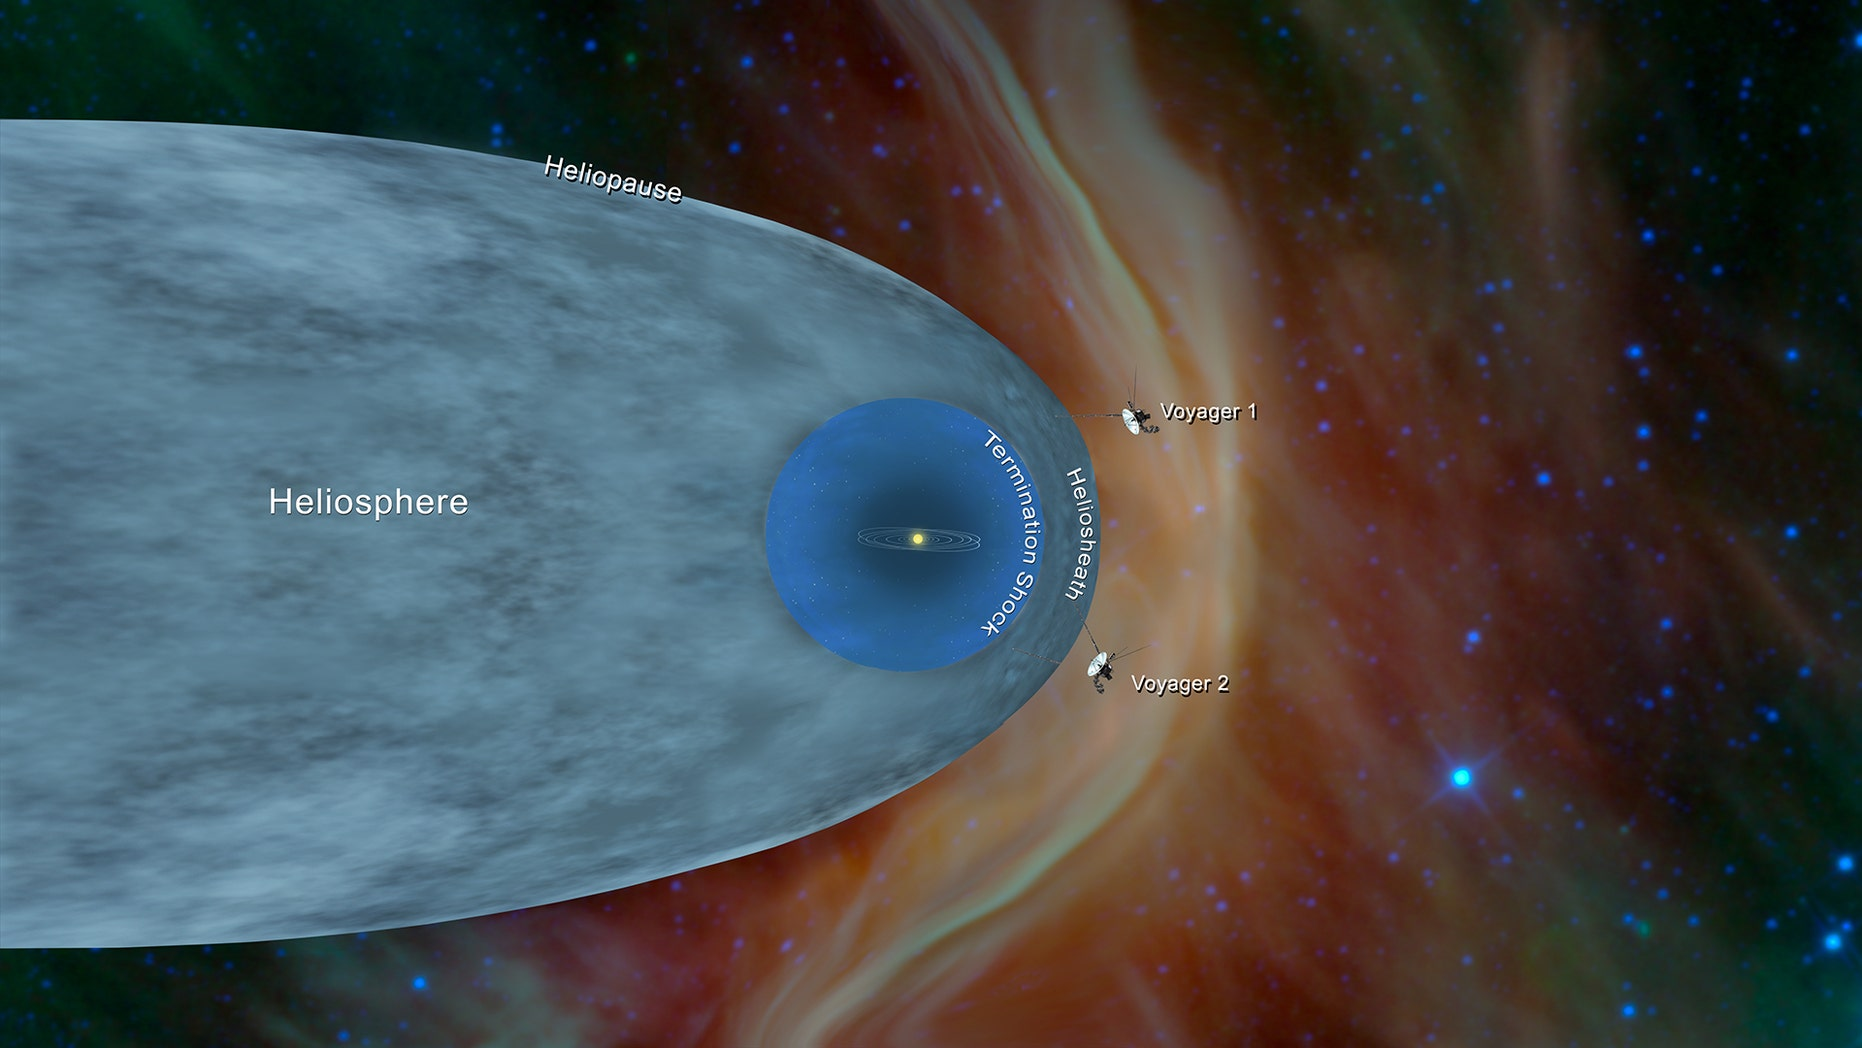 NASA's Voyager 2 Probe Enters Interstellar Space 41 Years After Launch